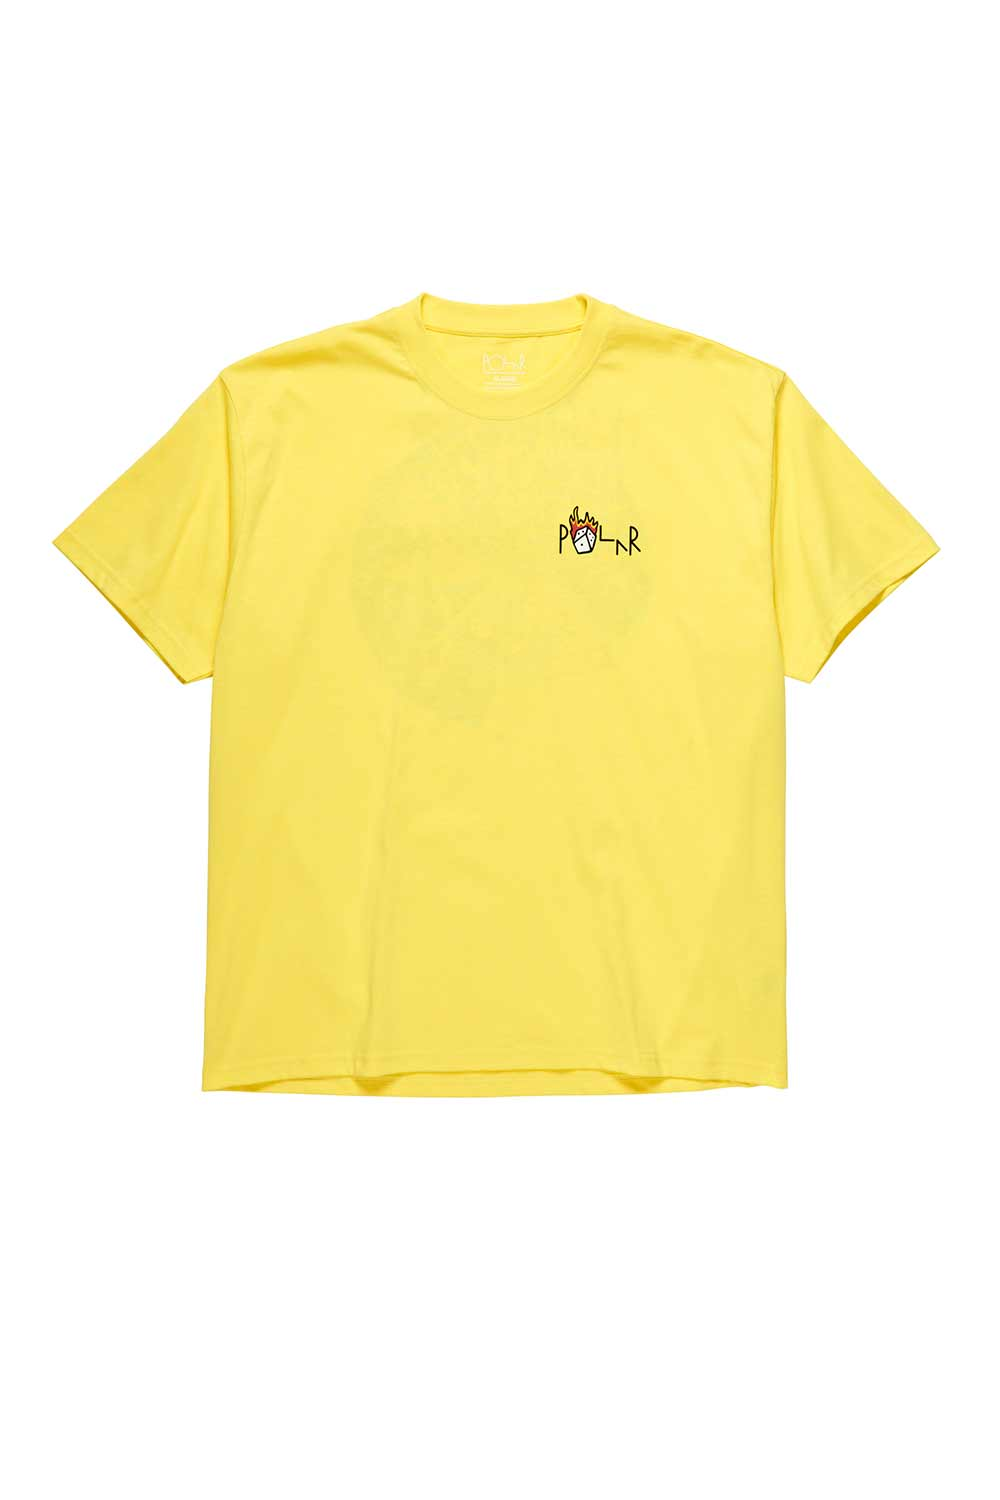 Polar Skate Co Castle Fill Logo Tee - Yellow